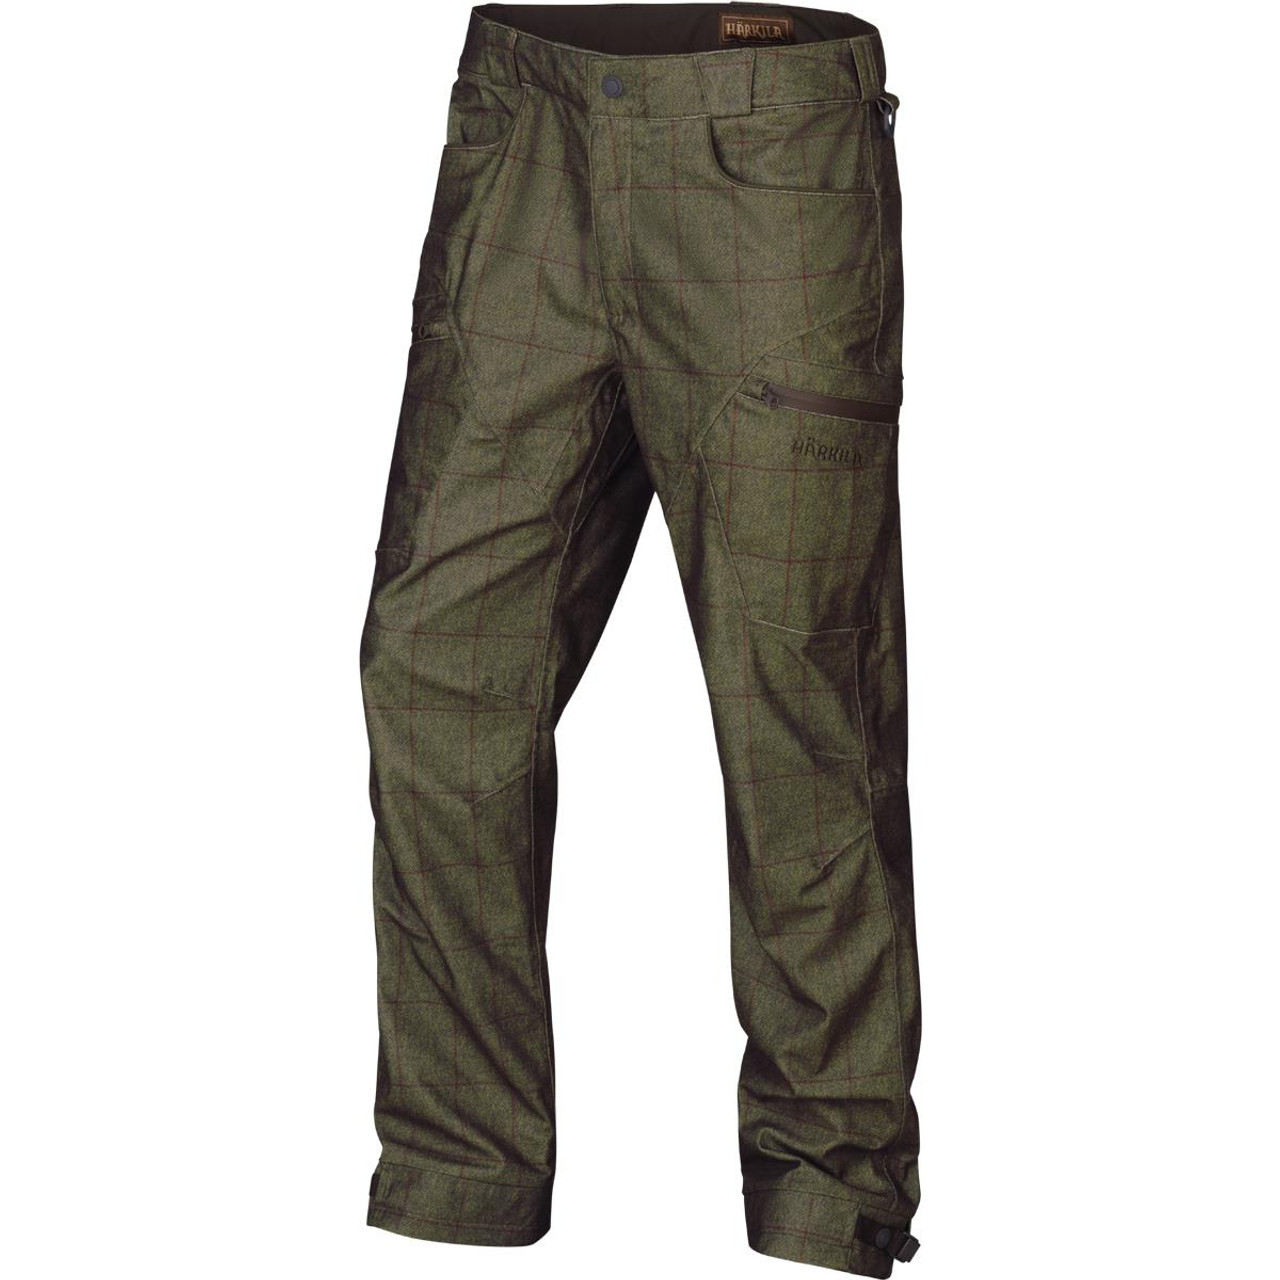 Willow Green Harkila Stornoway Active Trousers